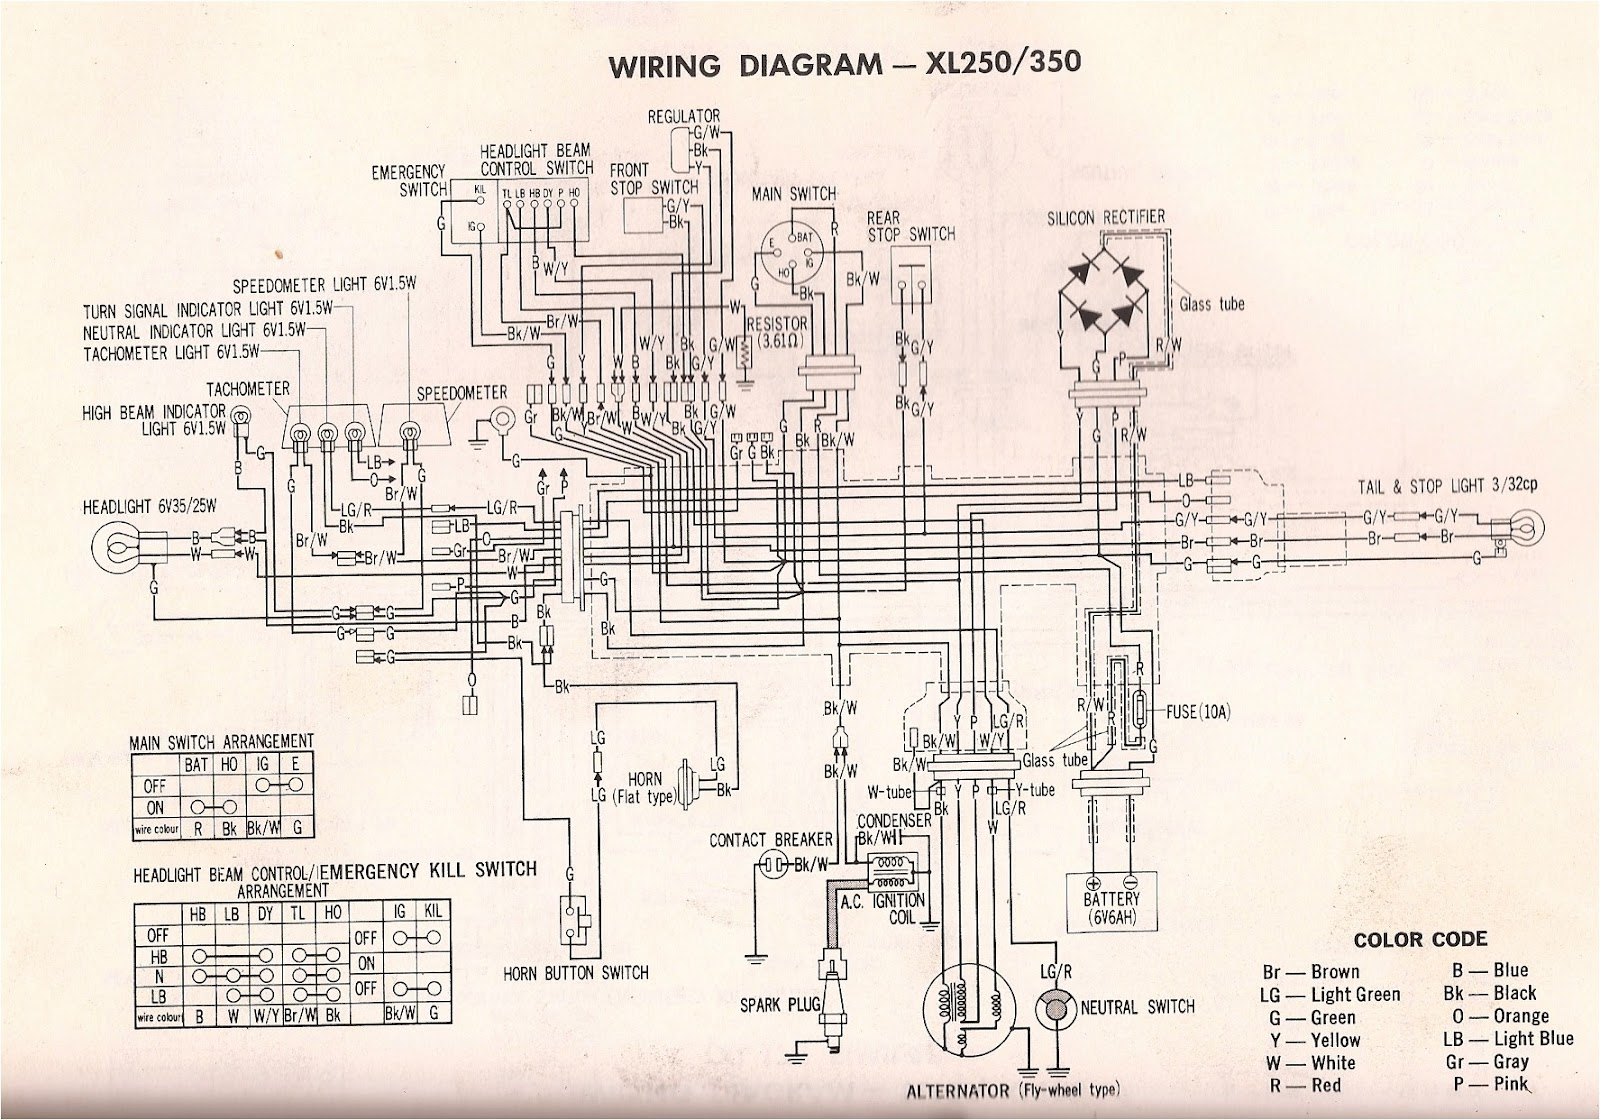 Yamaha Moto 4 Wiring Diagram in addition 2013 03 01 archive furthermore Xl350 Wiring Diagram And Xl250 furthermore 144401 Reverse Light furthermore Yamaha motorcycle service manuals 2007 1100cc. on yamaha warrior 350 wiring diagram